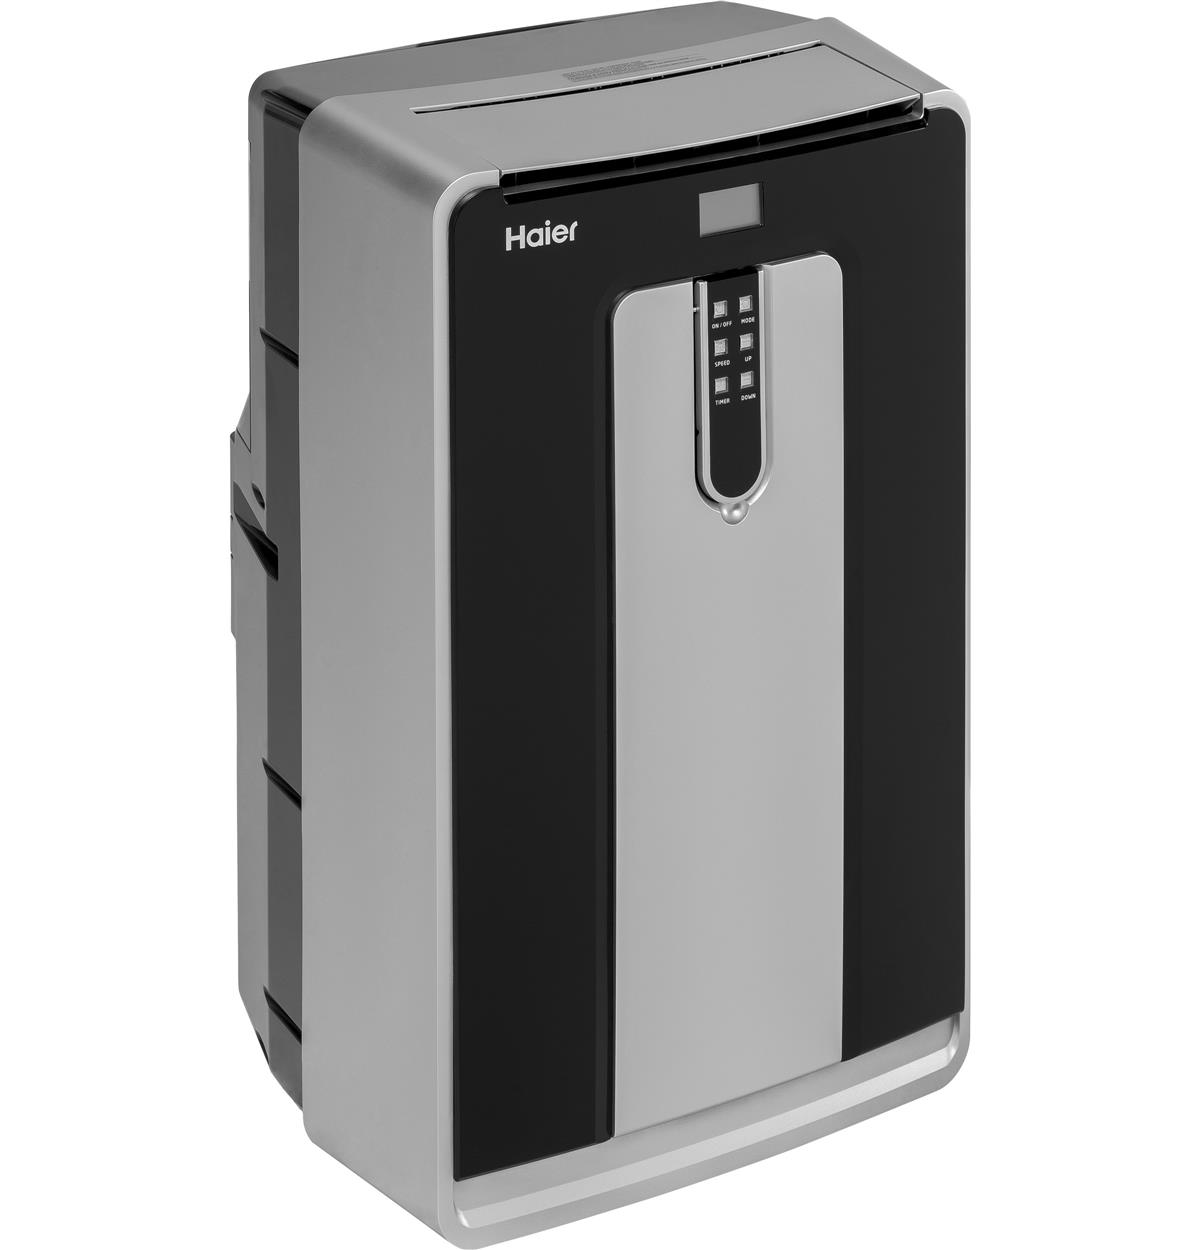 HPND14XCT -Portable Air Conditioner - Dual Hose